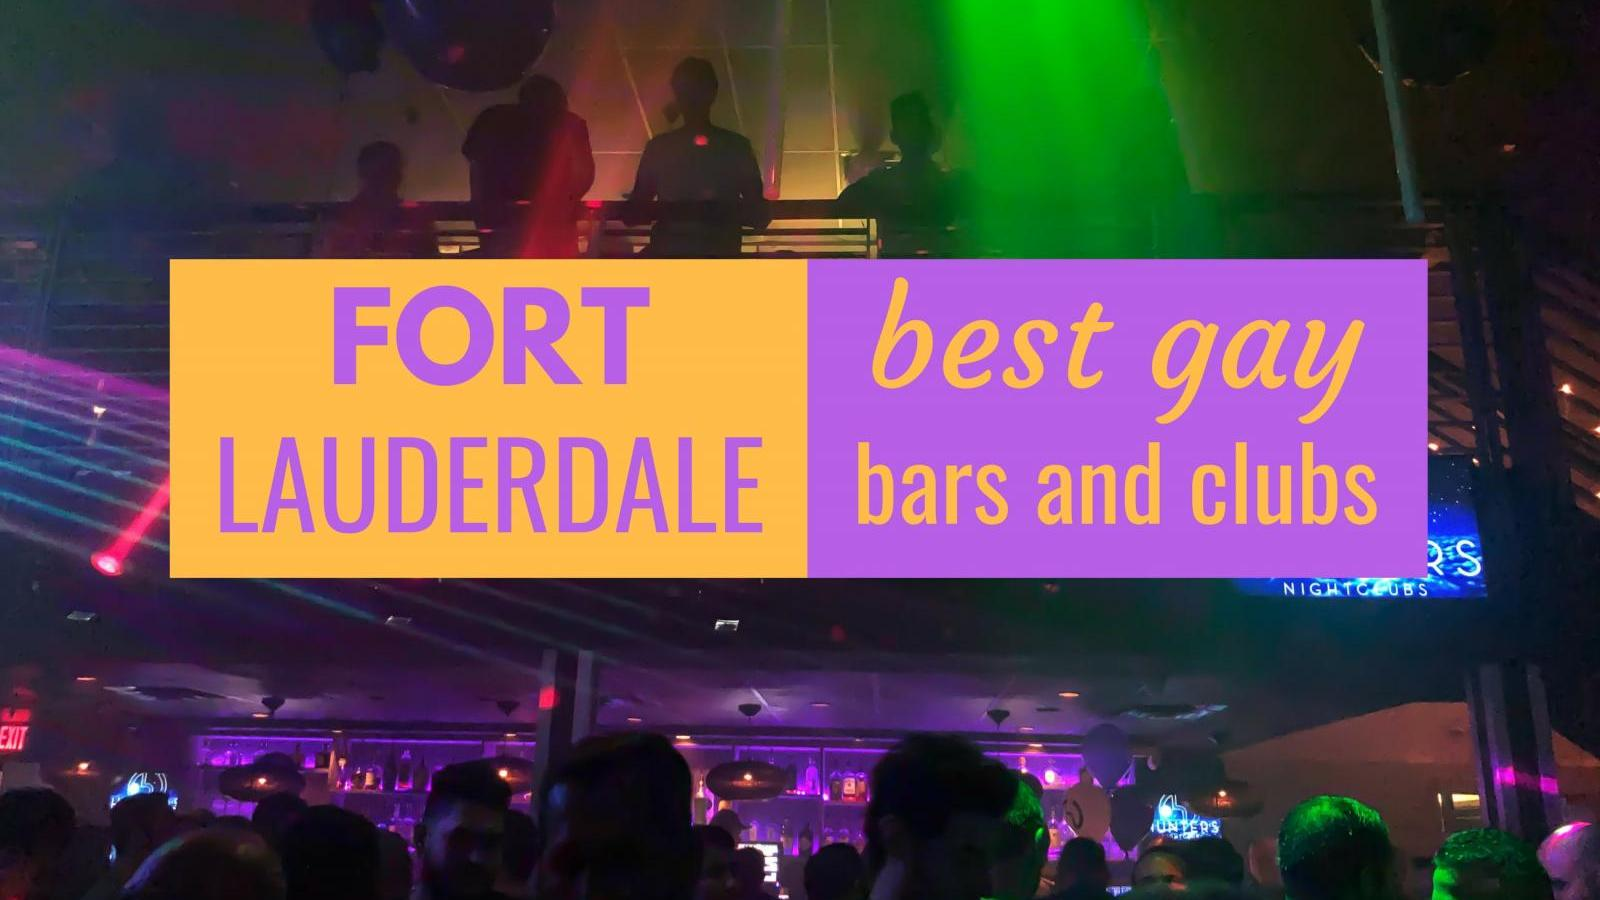 Best gay bars in Fort Lauderdale in Wilton Manors